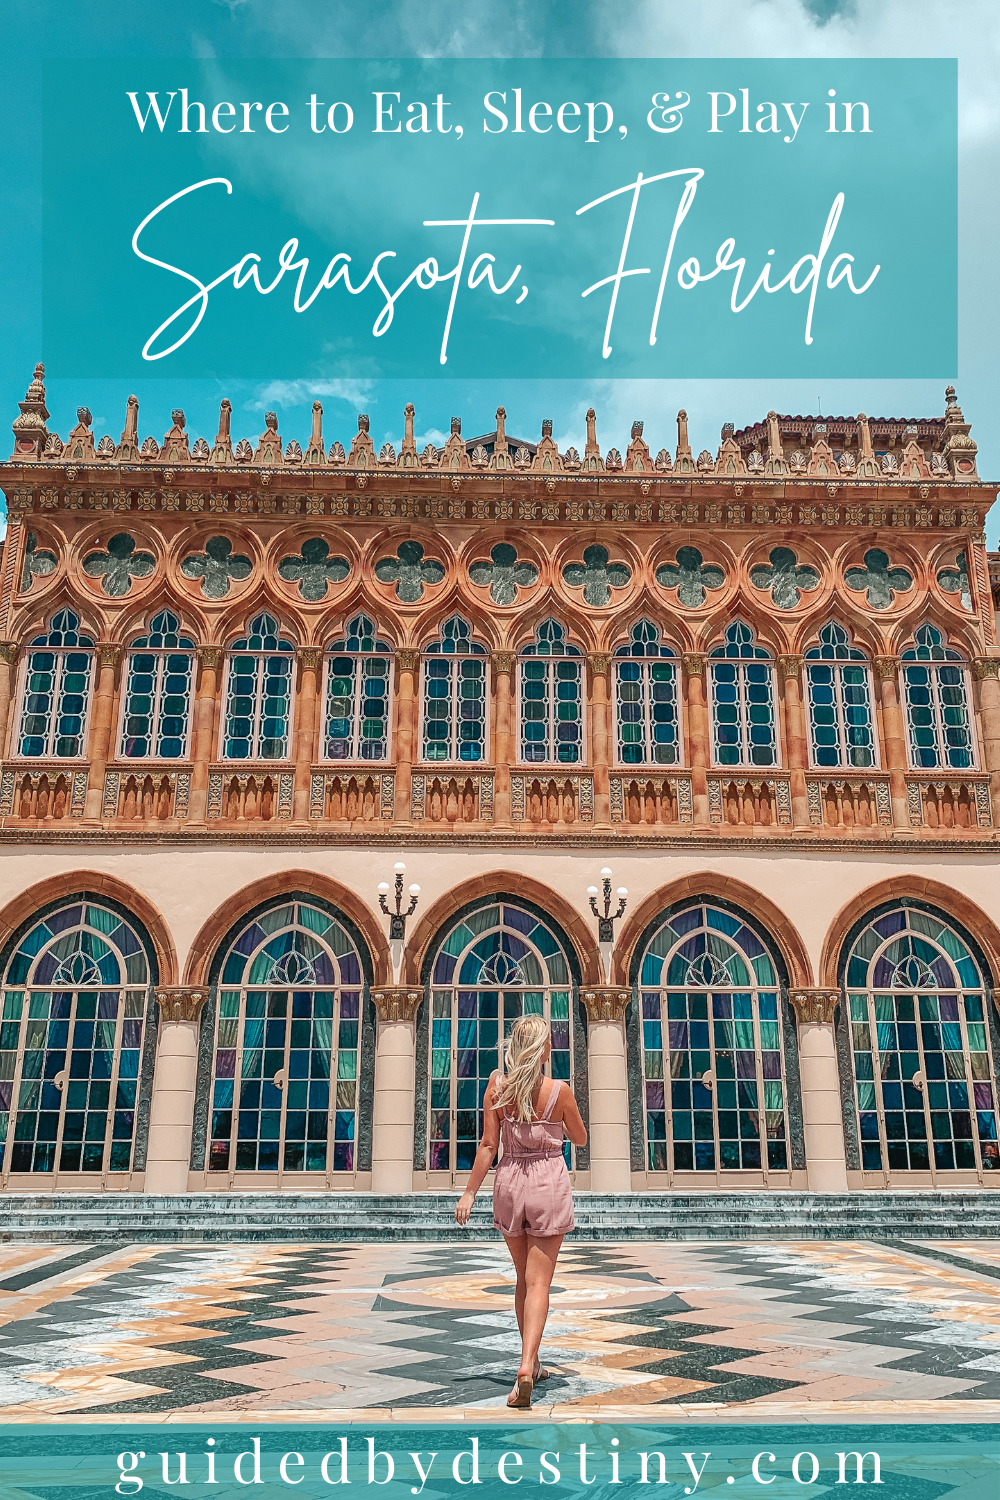 Sarasota Florida Is Such An Underrated Florida Destination Check Out This Visitors Guide To See A In 2021 Florida Travel Guide Usa Travel Destinations Florida Travel